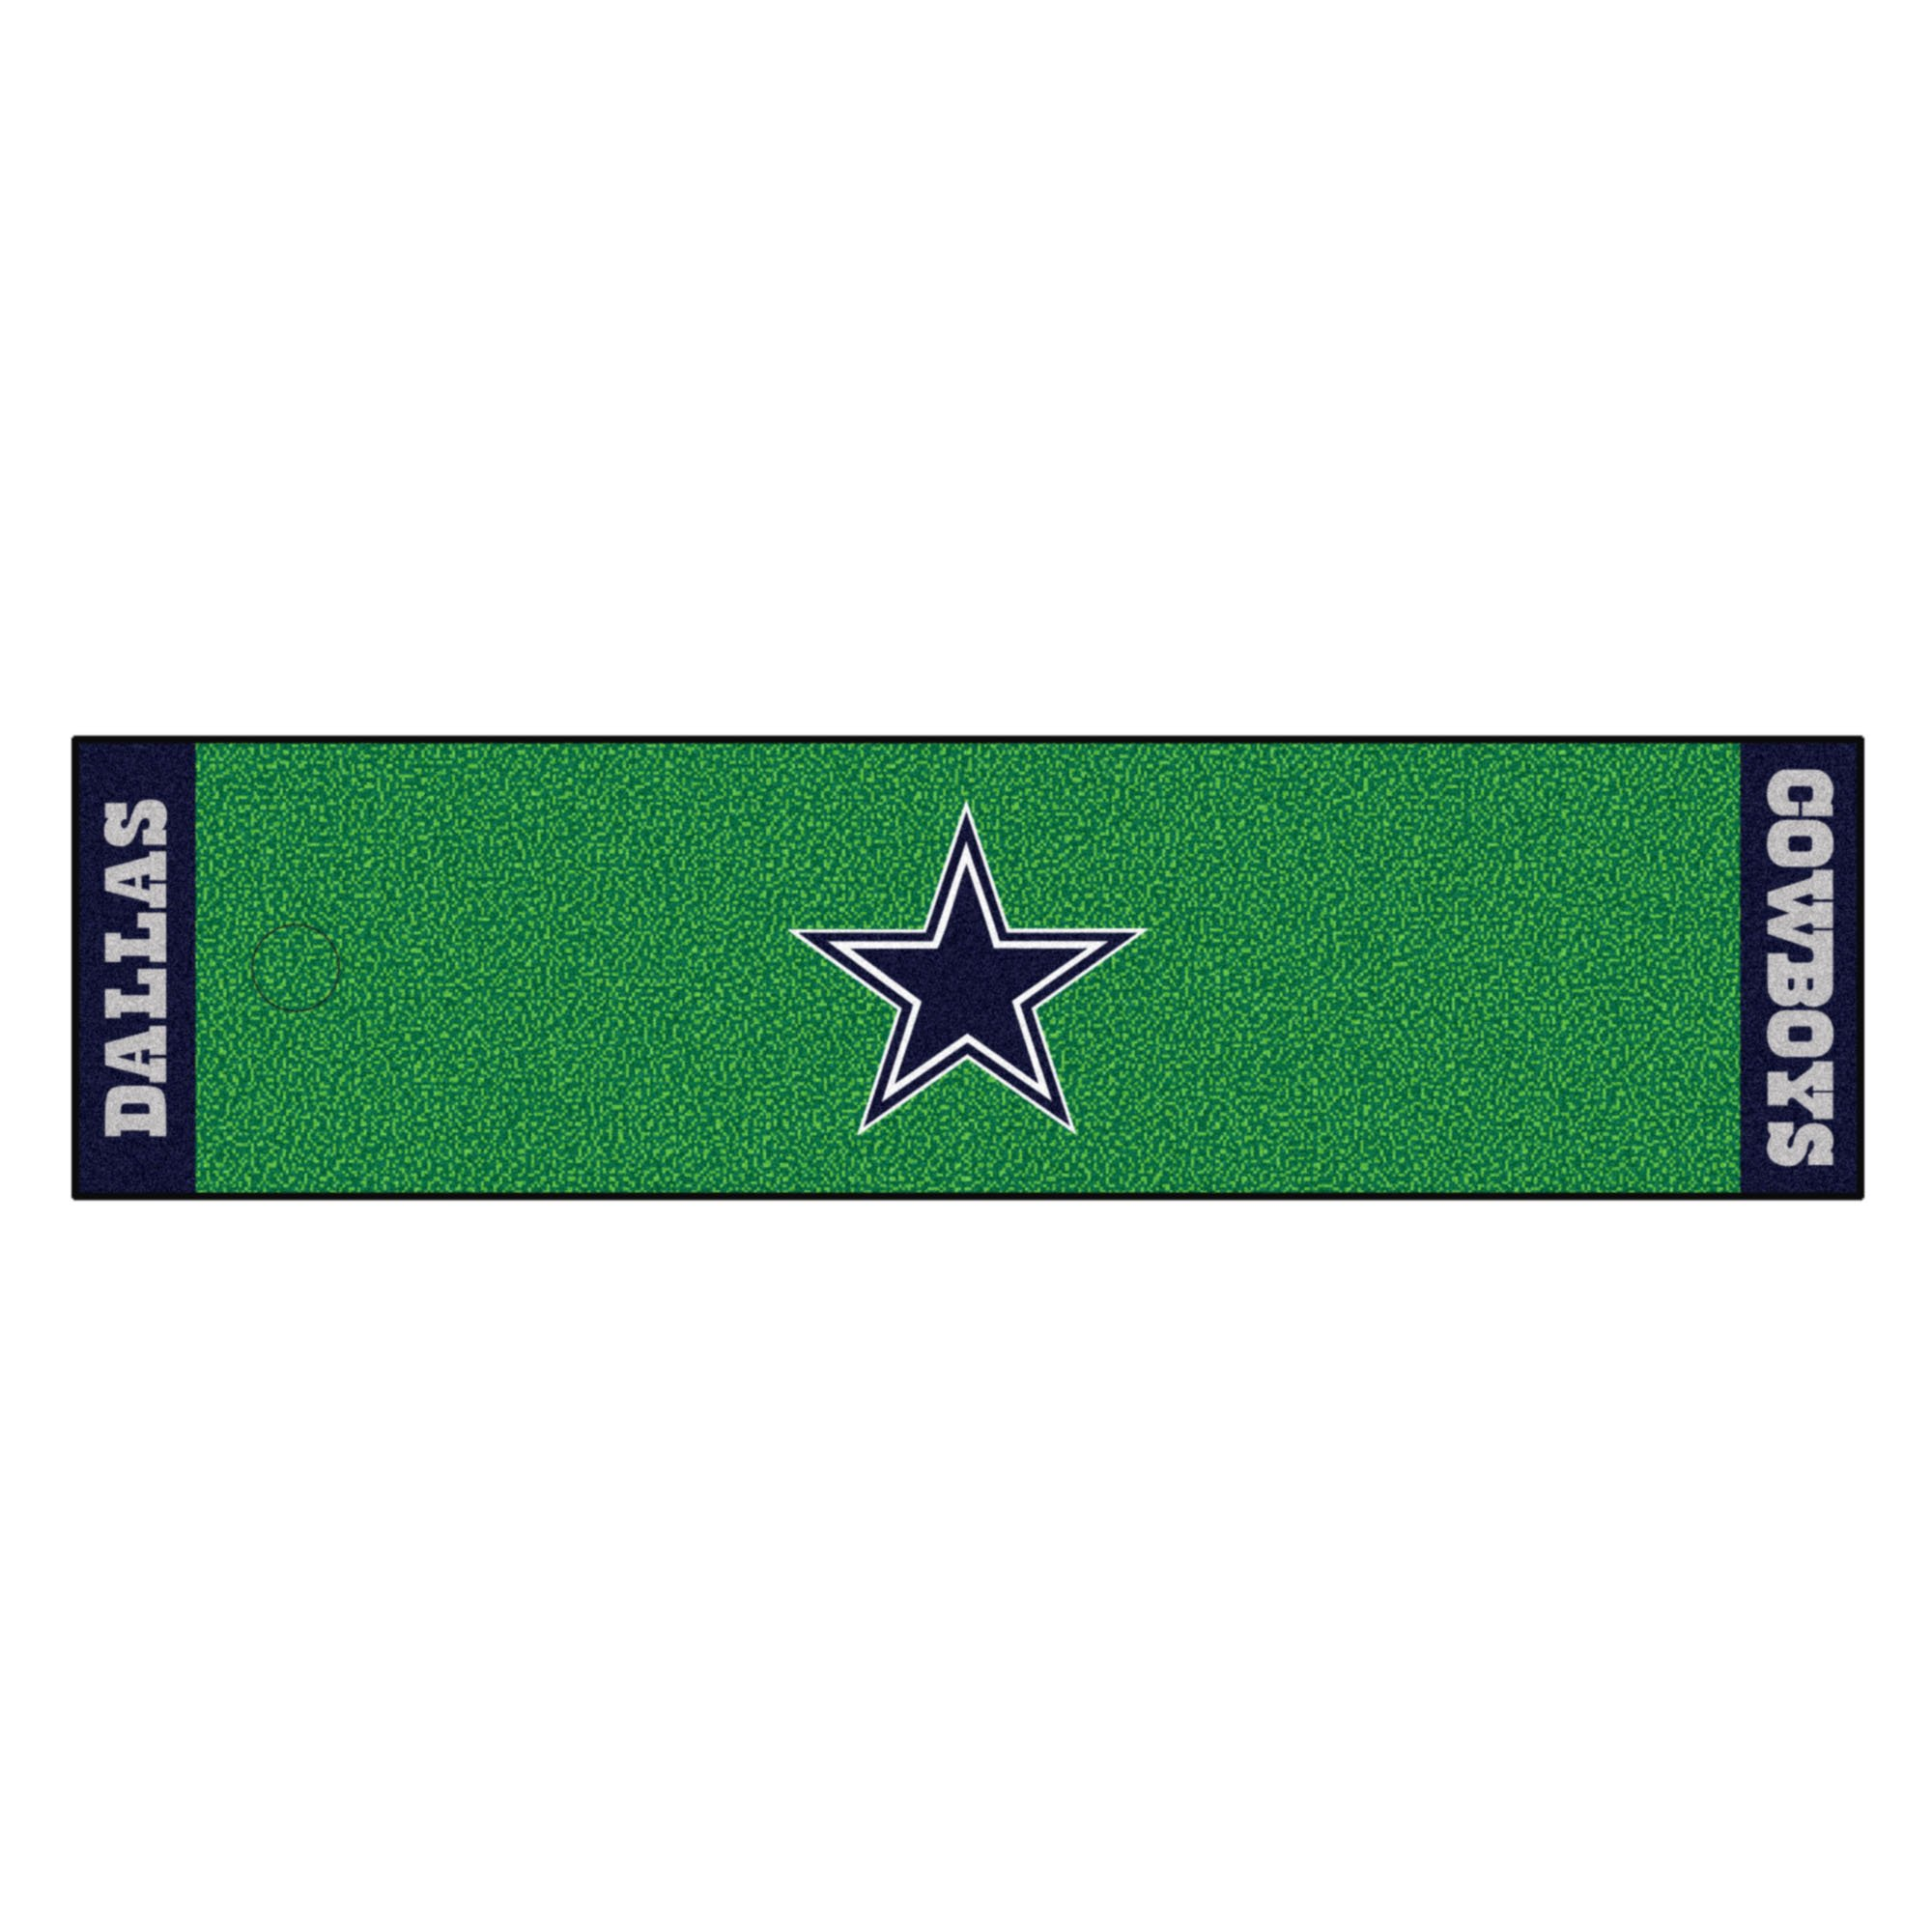 Fanmats NFL Dallas Cowboys Nylon Face Putting Green Mat